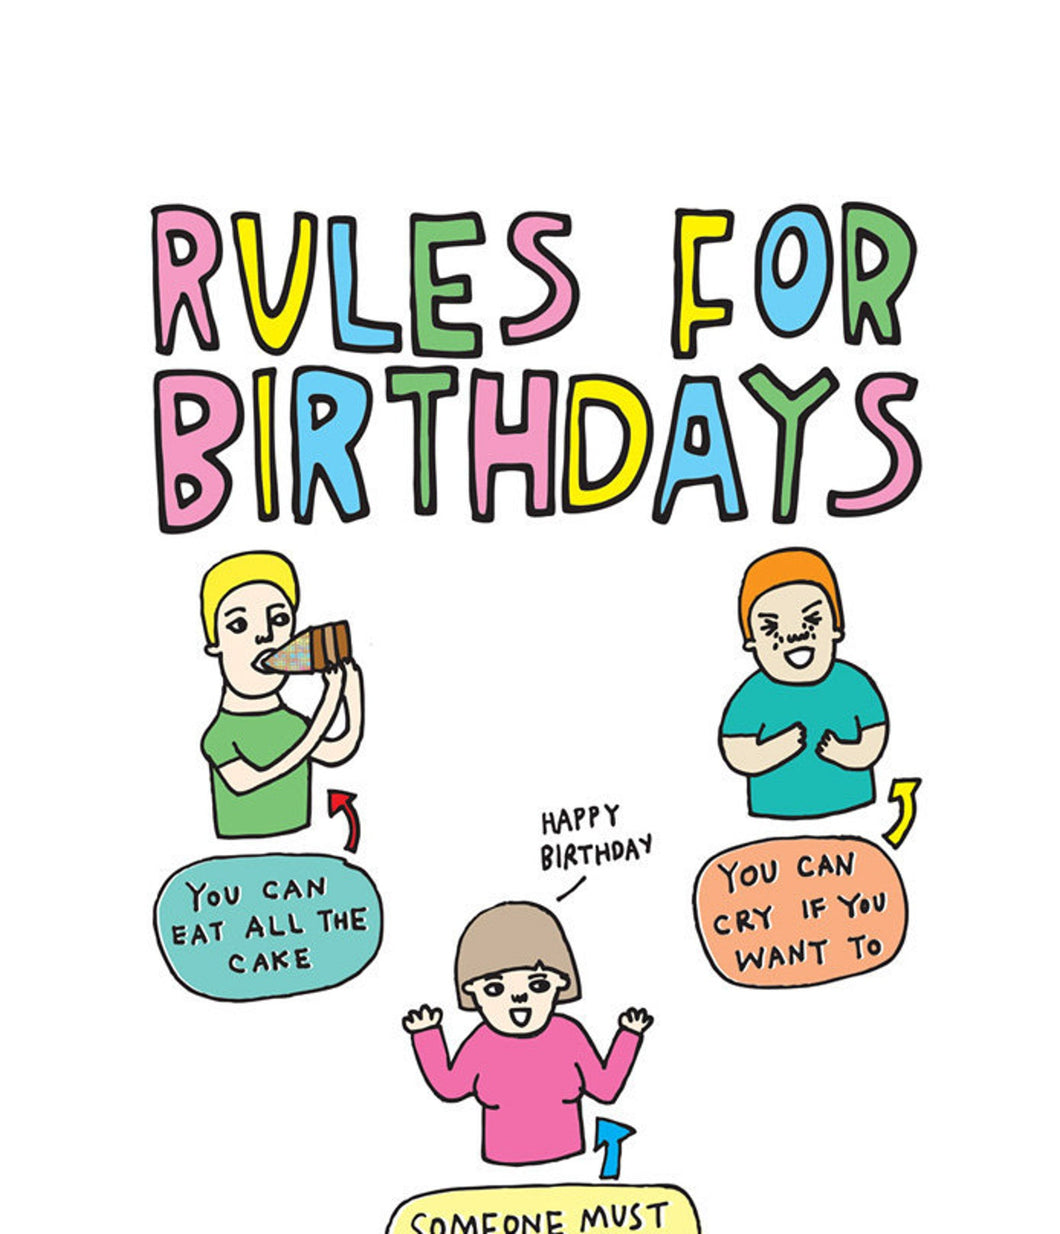 RULES FOR BIRTHDAYS